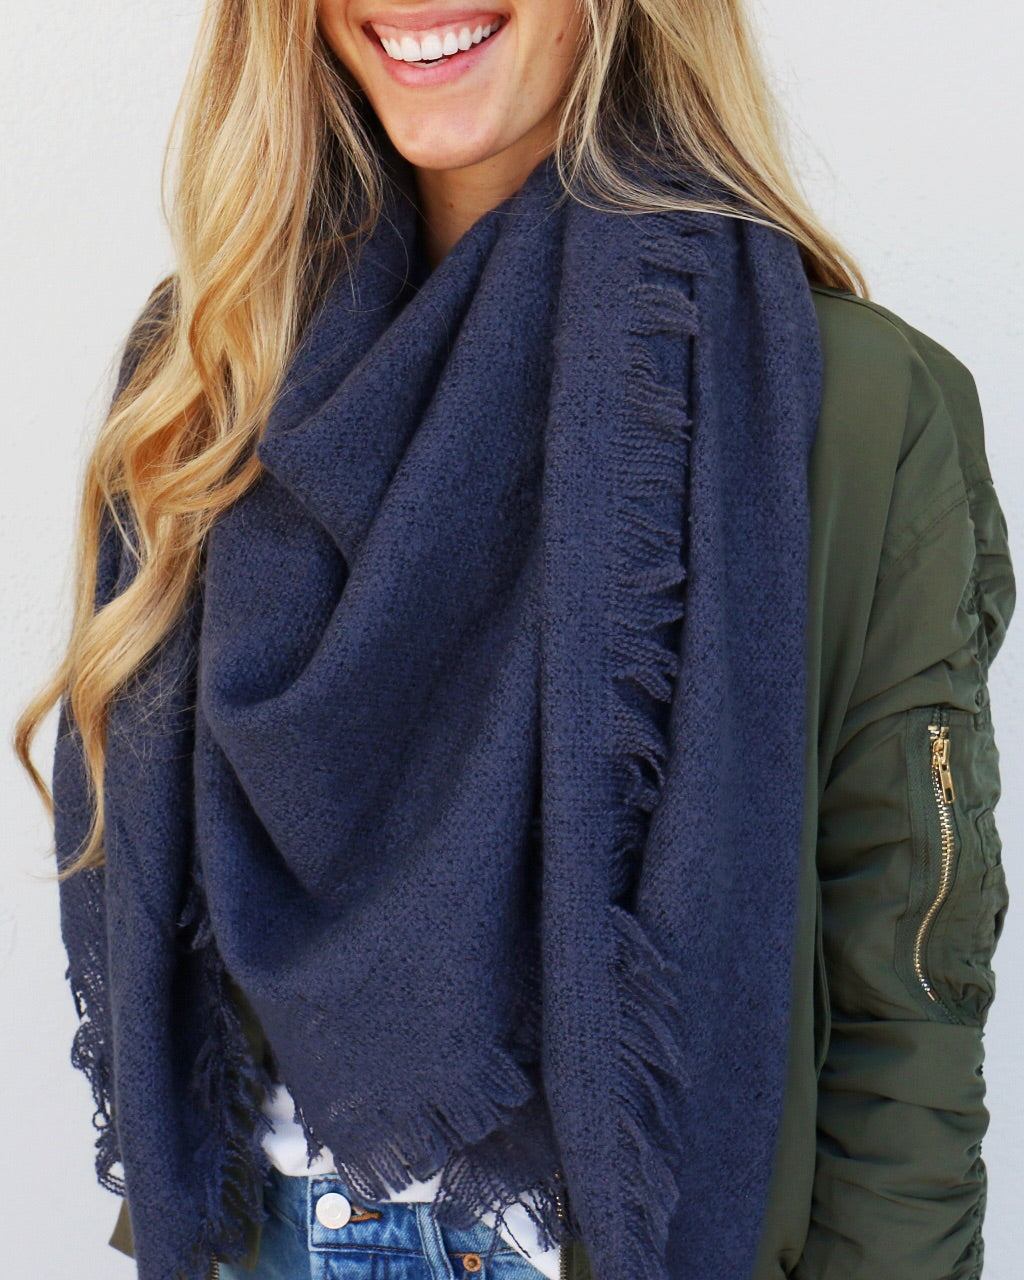 Fallbrook Scarf in Slate